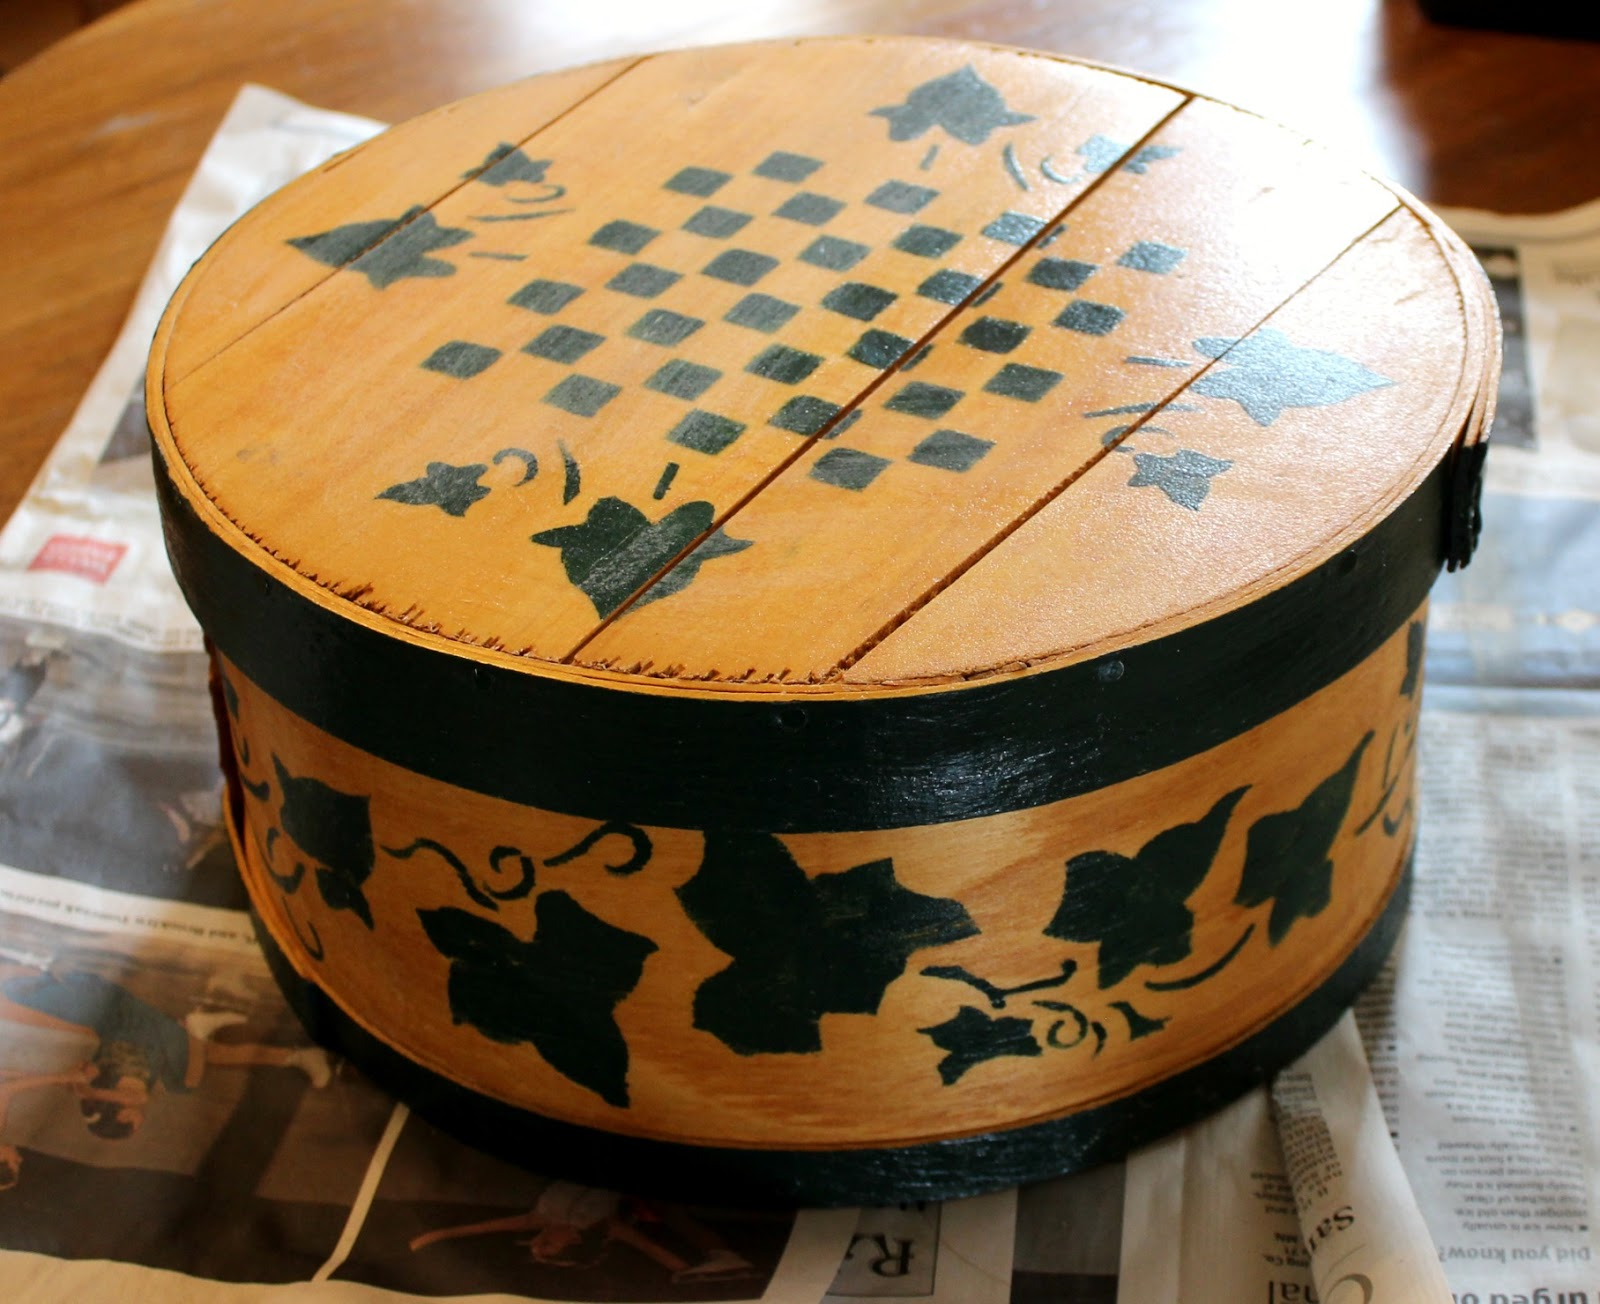 Diy Repurposed Cheese Box Becomes A Fun Coffee Themed Side Table